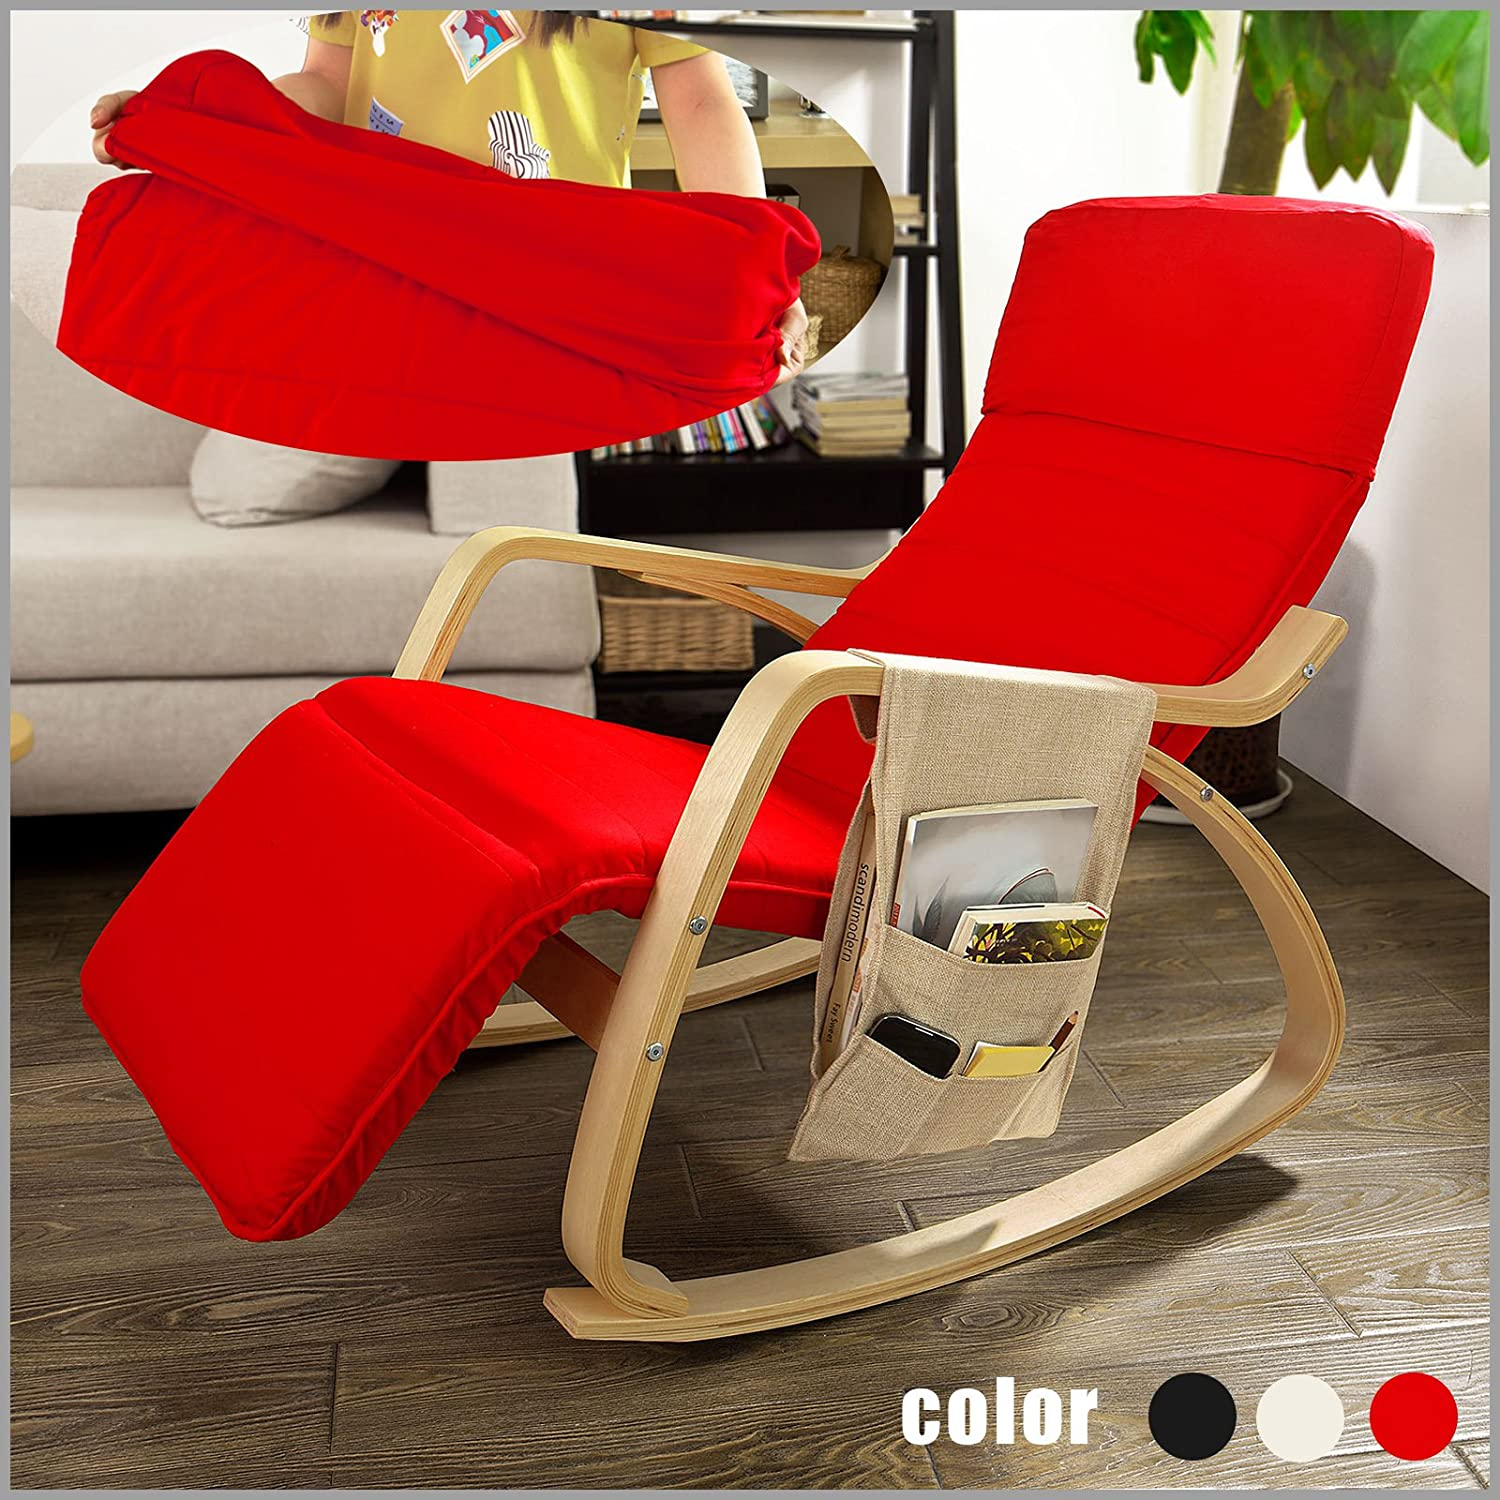 sessel g nstig gro er vergleichscheck relaxsessel empfehlung. Black Bedroom Furniture Sets. Home Design Ideas